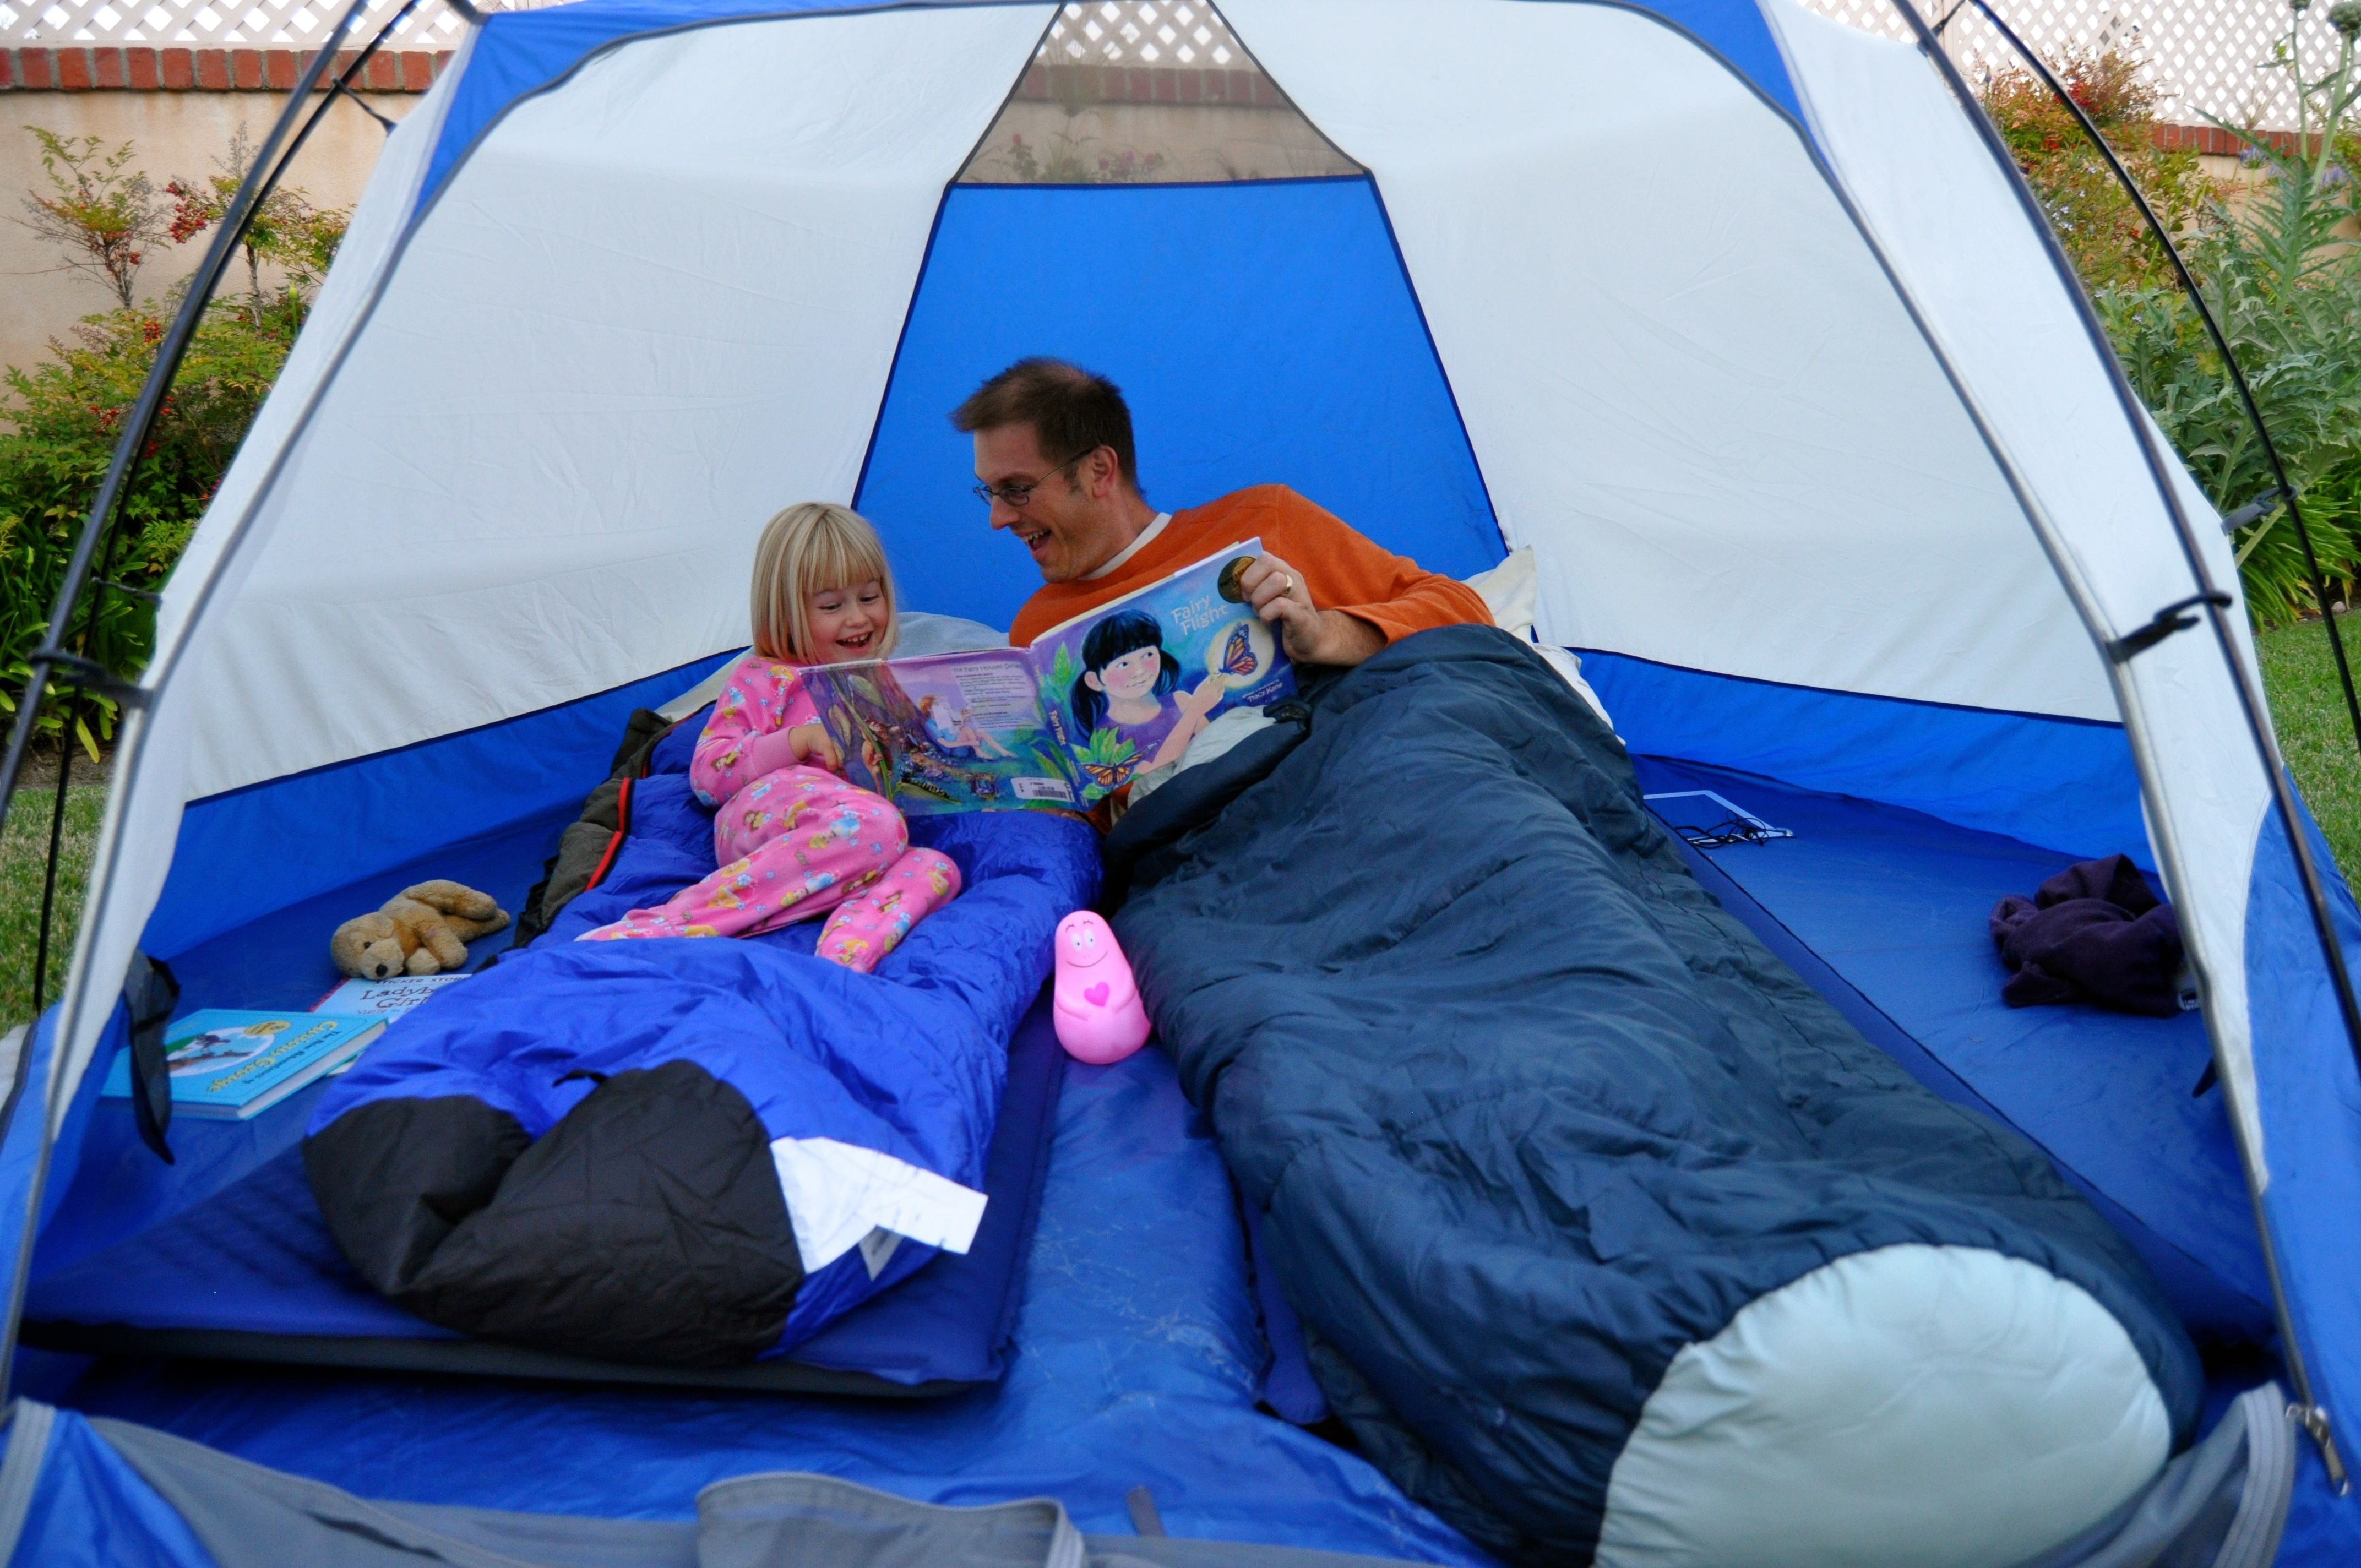 Camping In The Backyard With Toddlers : Green Camping with Kids  GreenMomcom